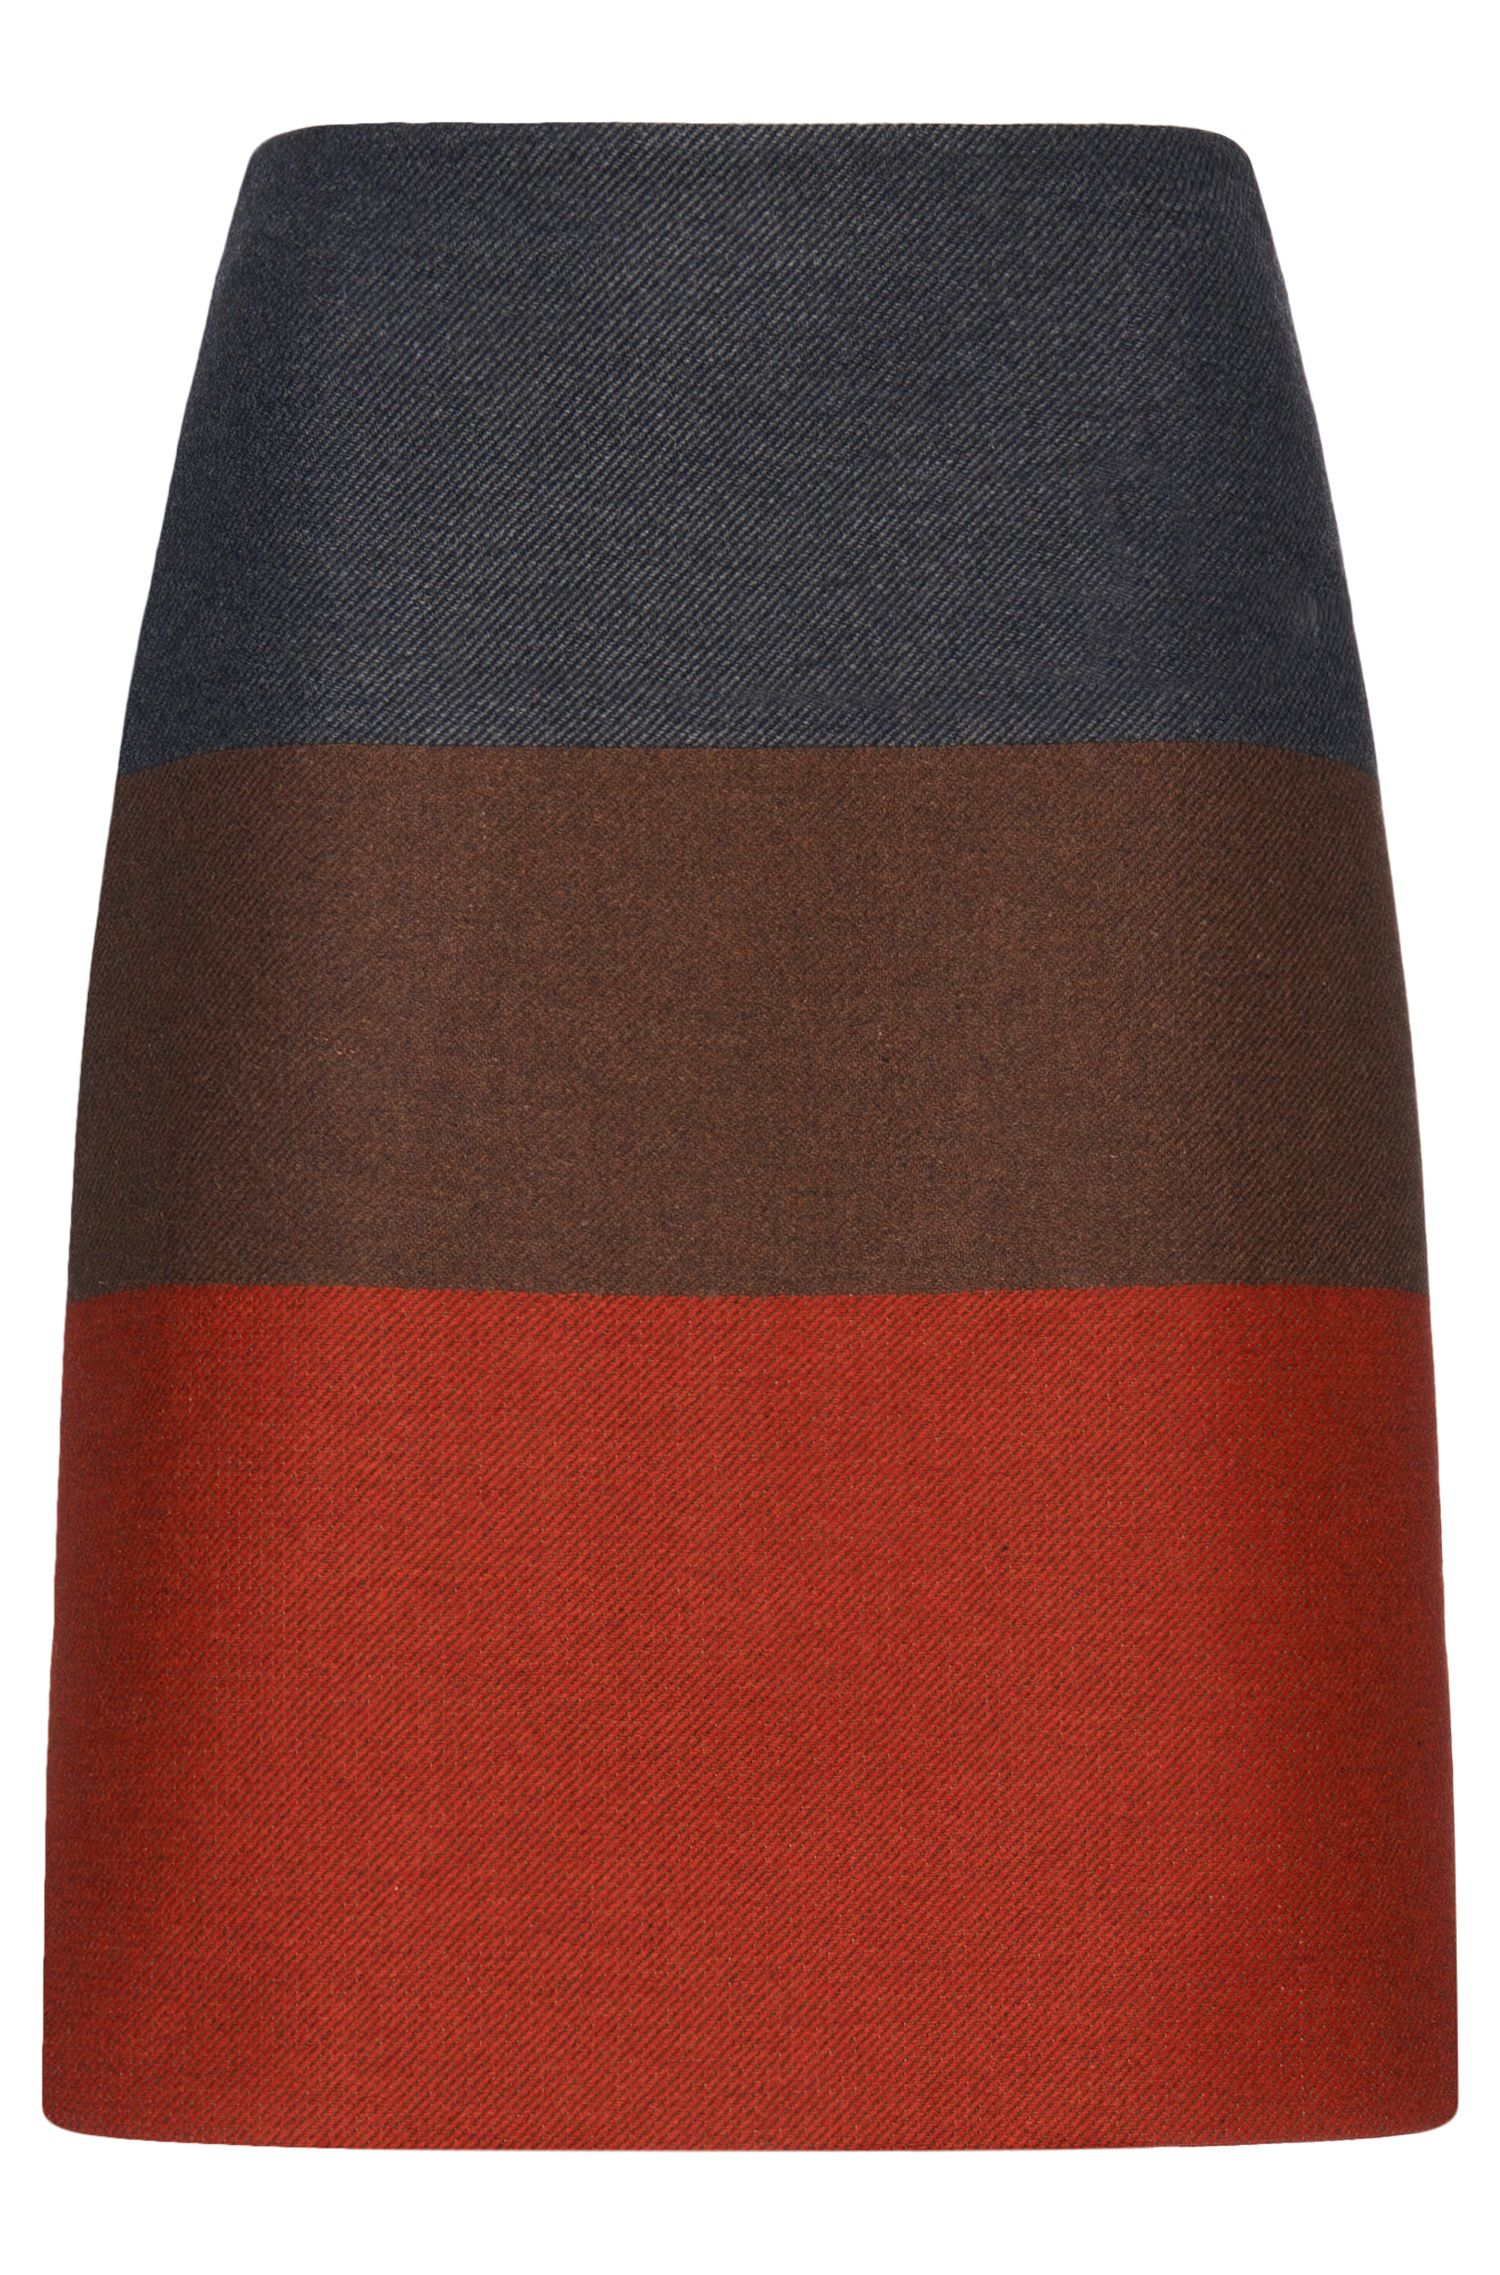 'Malivi' | Wool Cashmere Blend Twill Colorblocked Straight Skirt